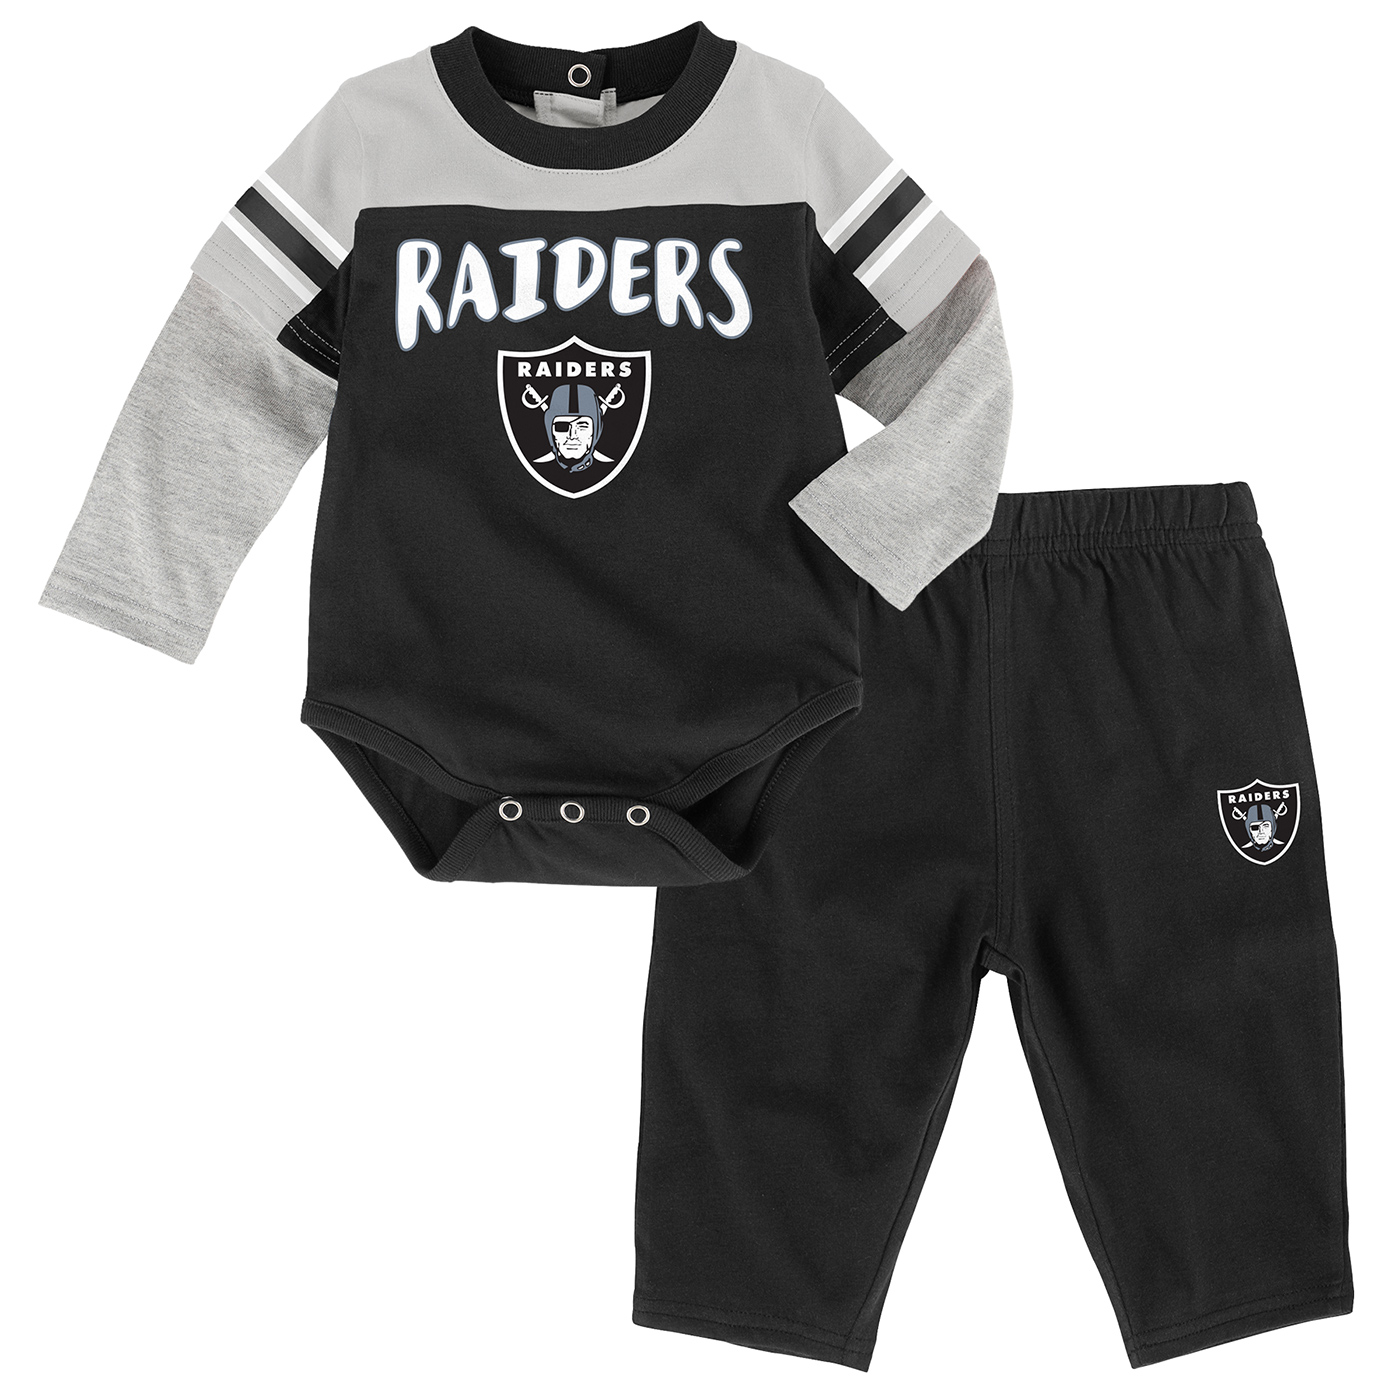 490aed5b2 Raiders Infant Halfback Creeper Set